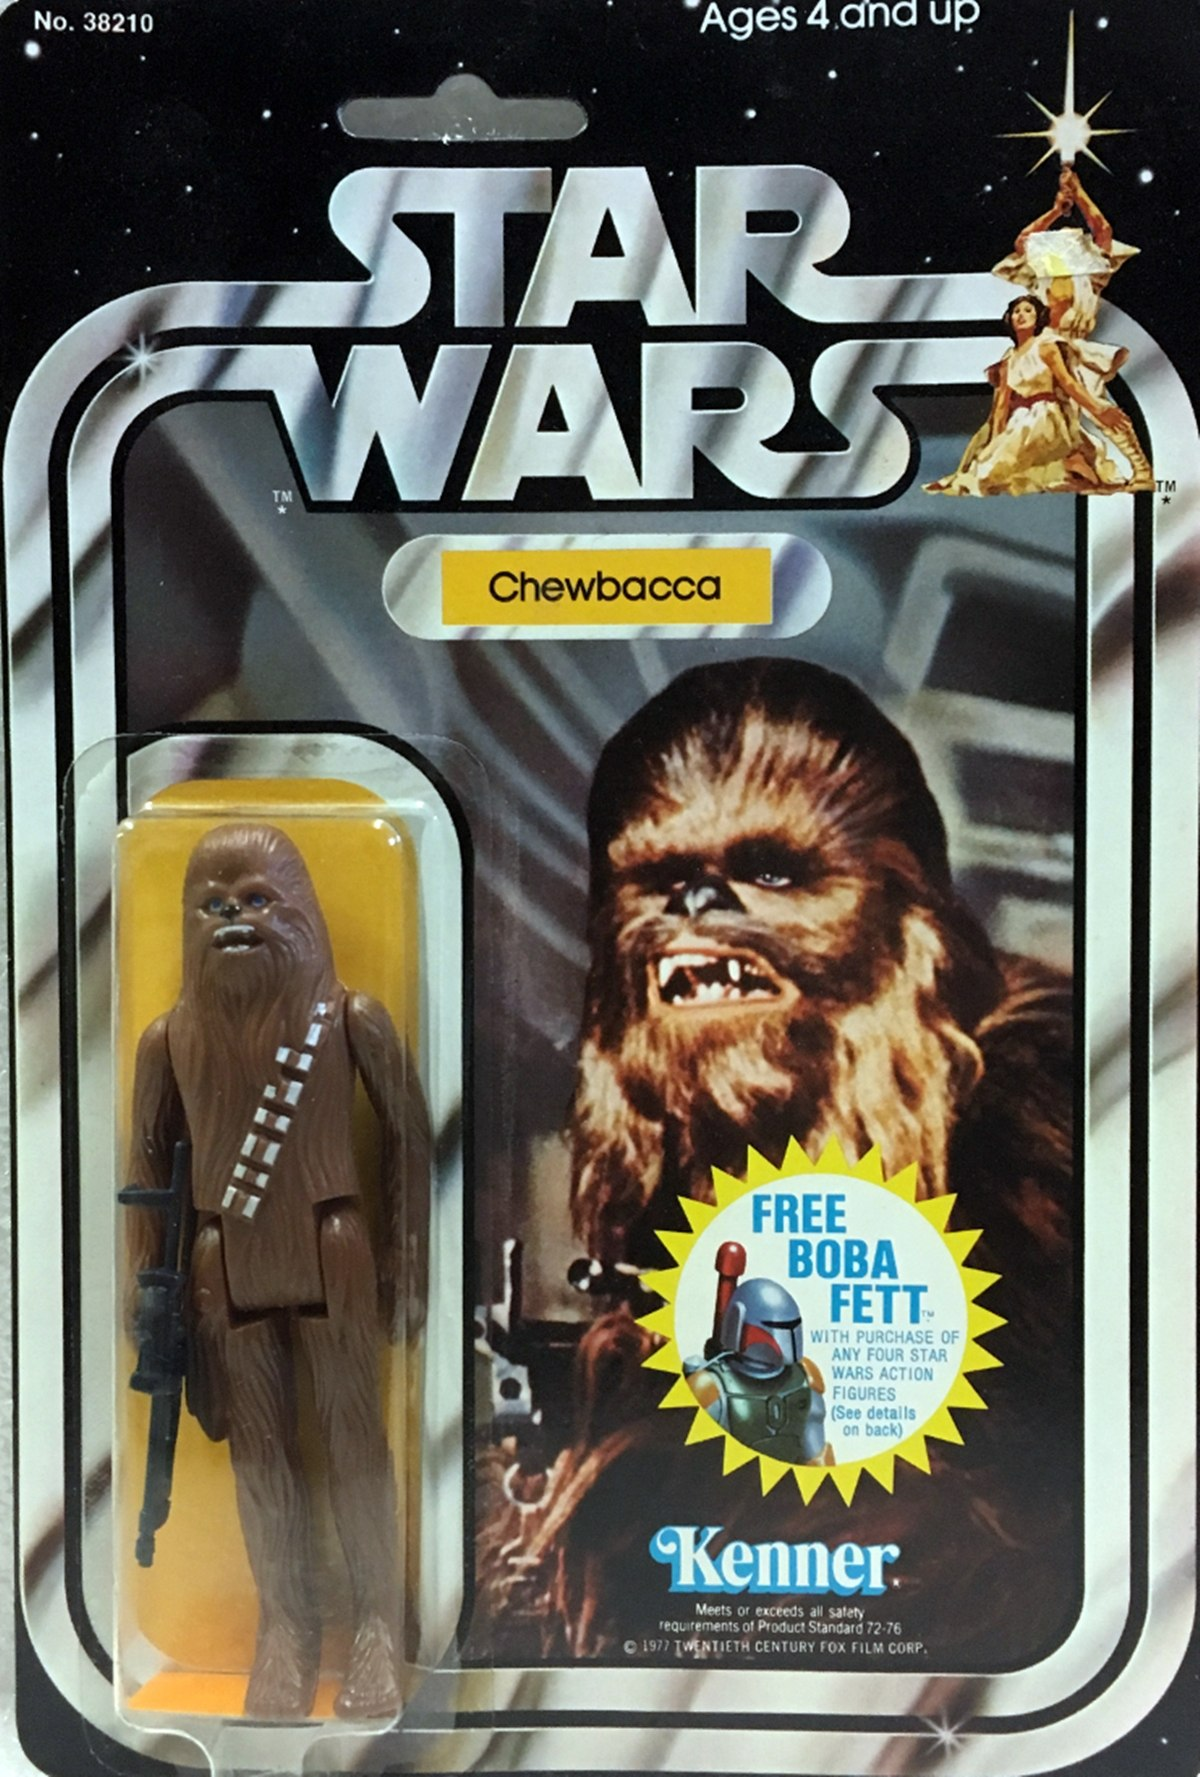 6 7 10 Star Wars Toys That Will Earn You A Fortune!